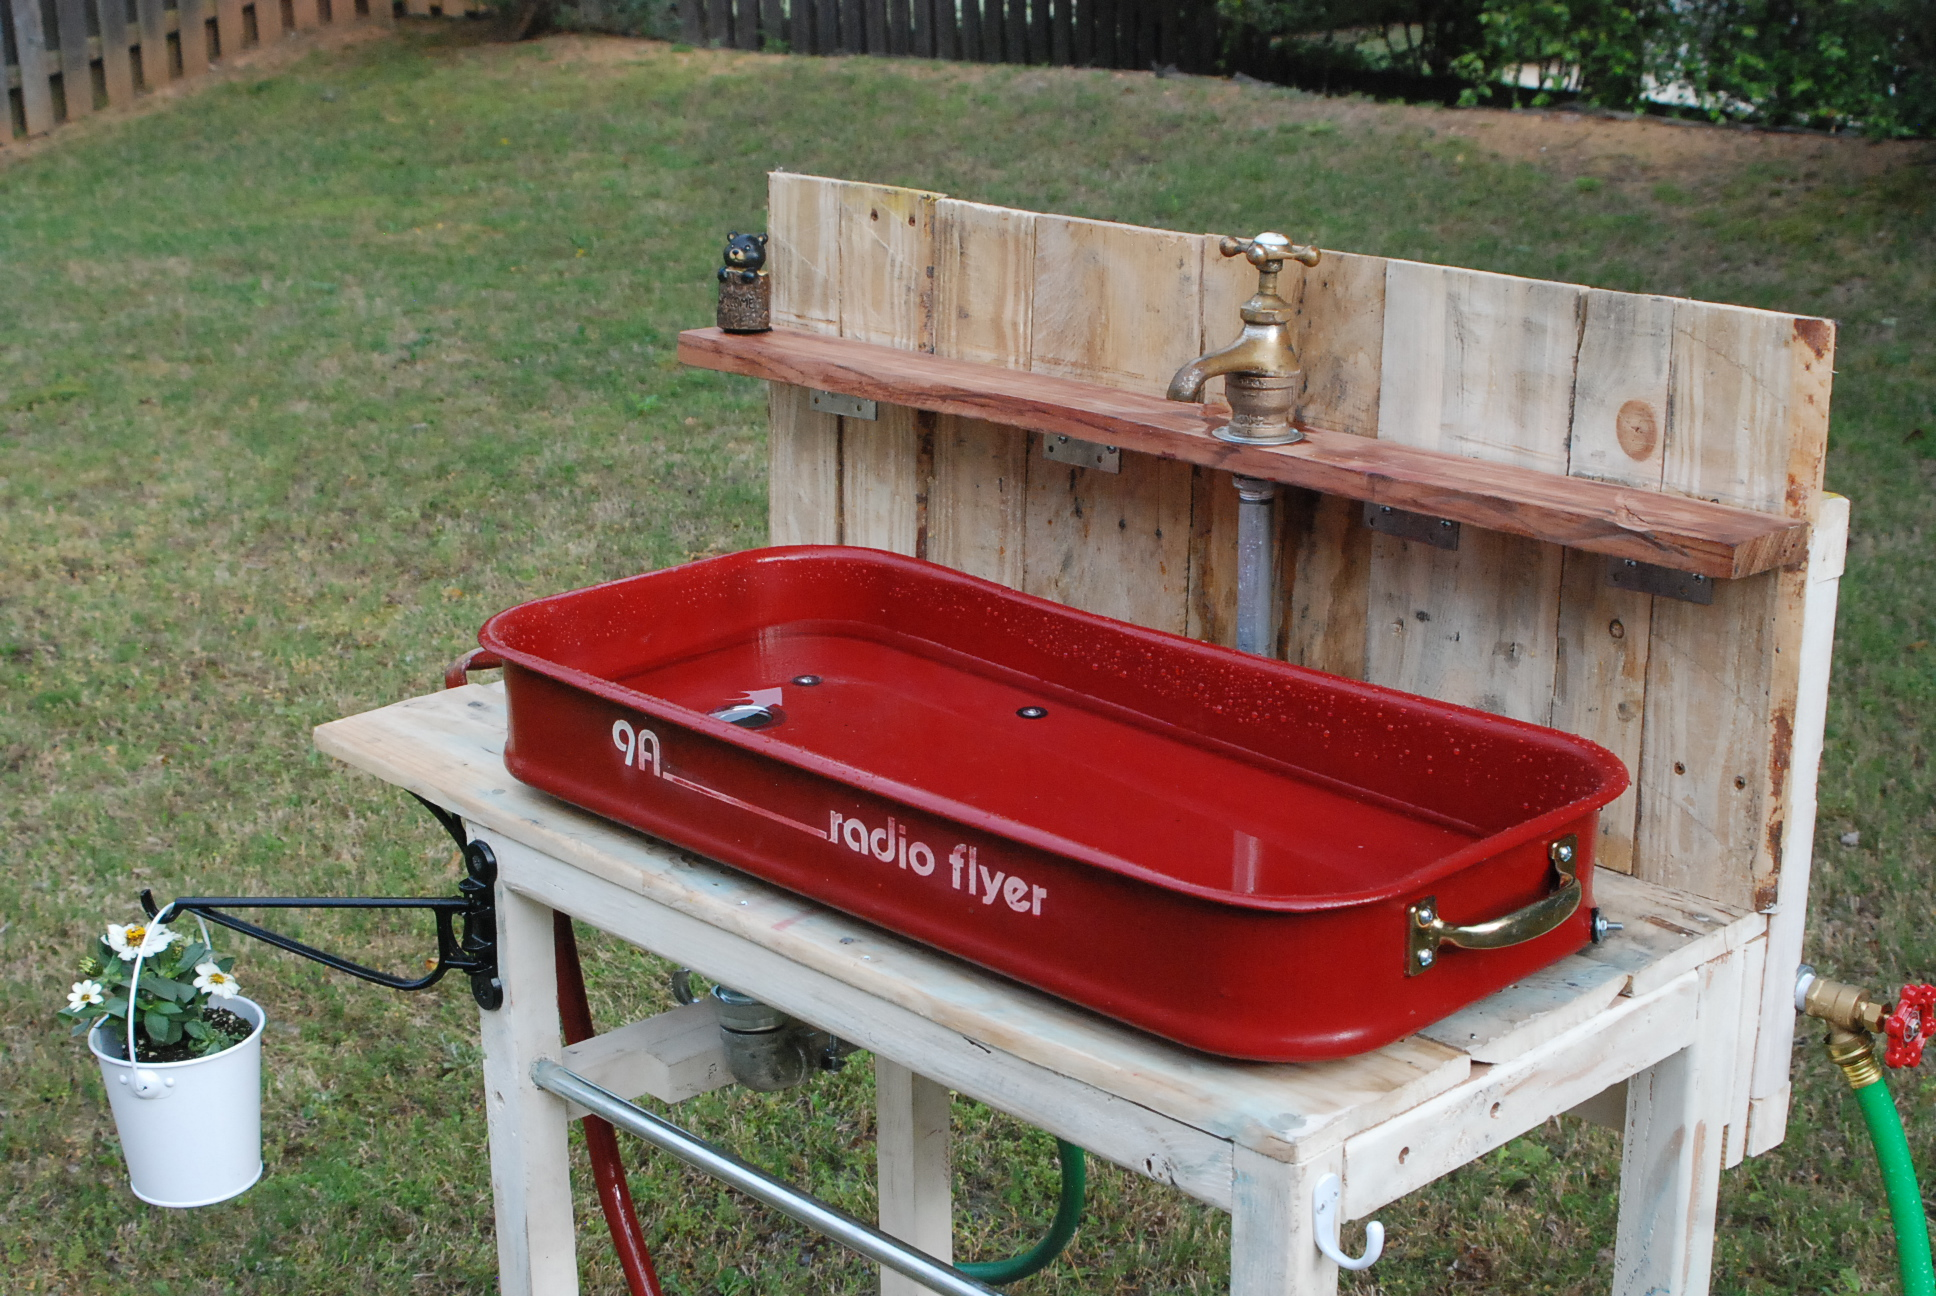 Galvanized Sinks Potting Benches Organized clutter a new potting